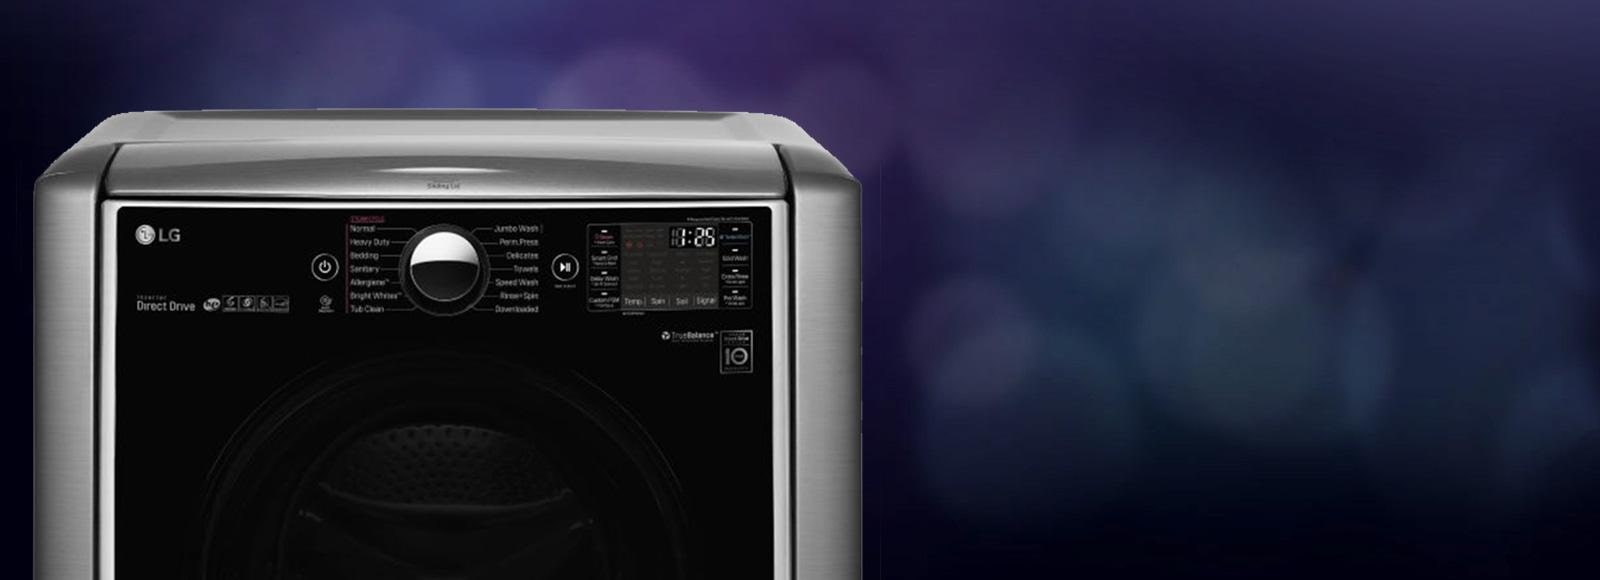 know-when-wash-is-in-action-dlex9000_1530088852824